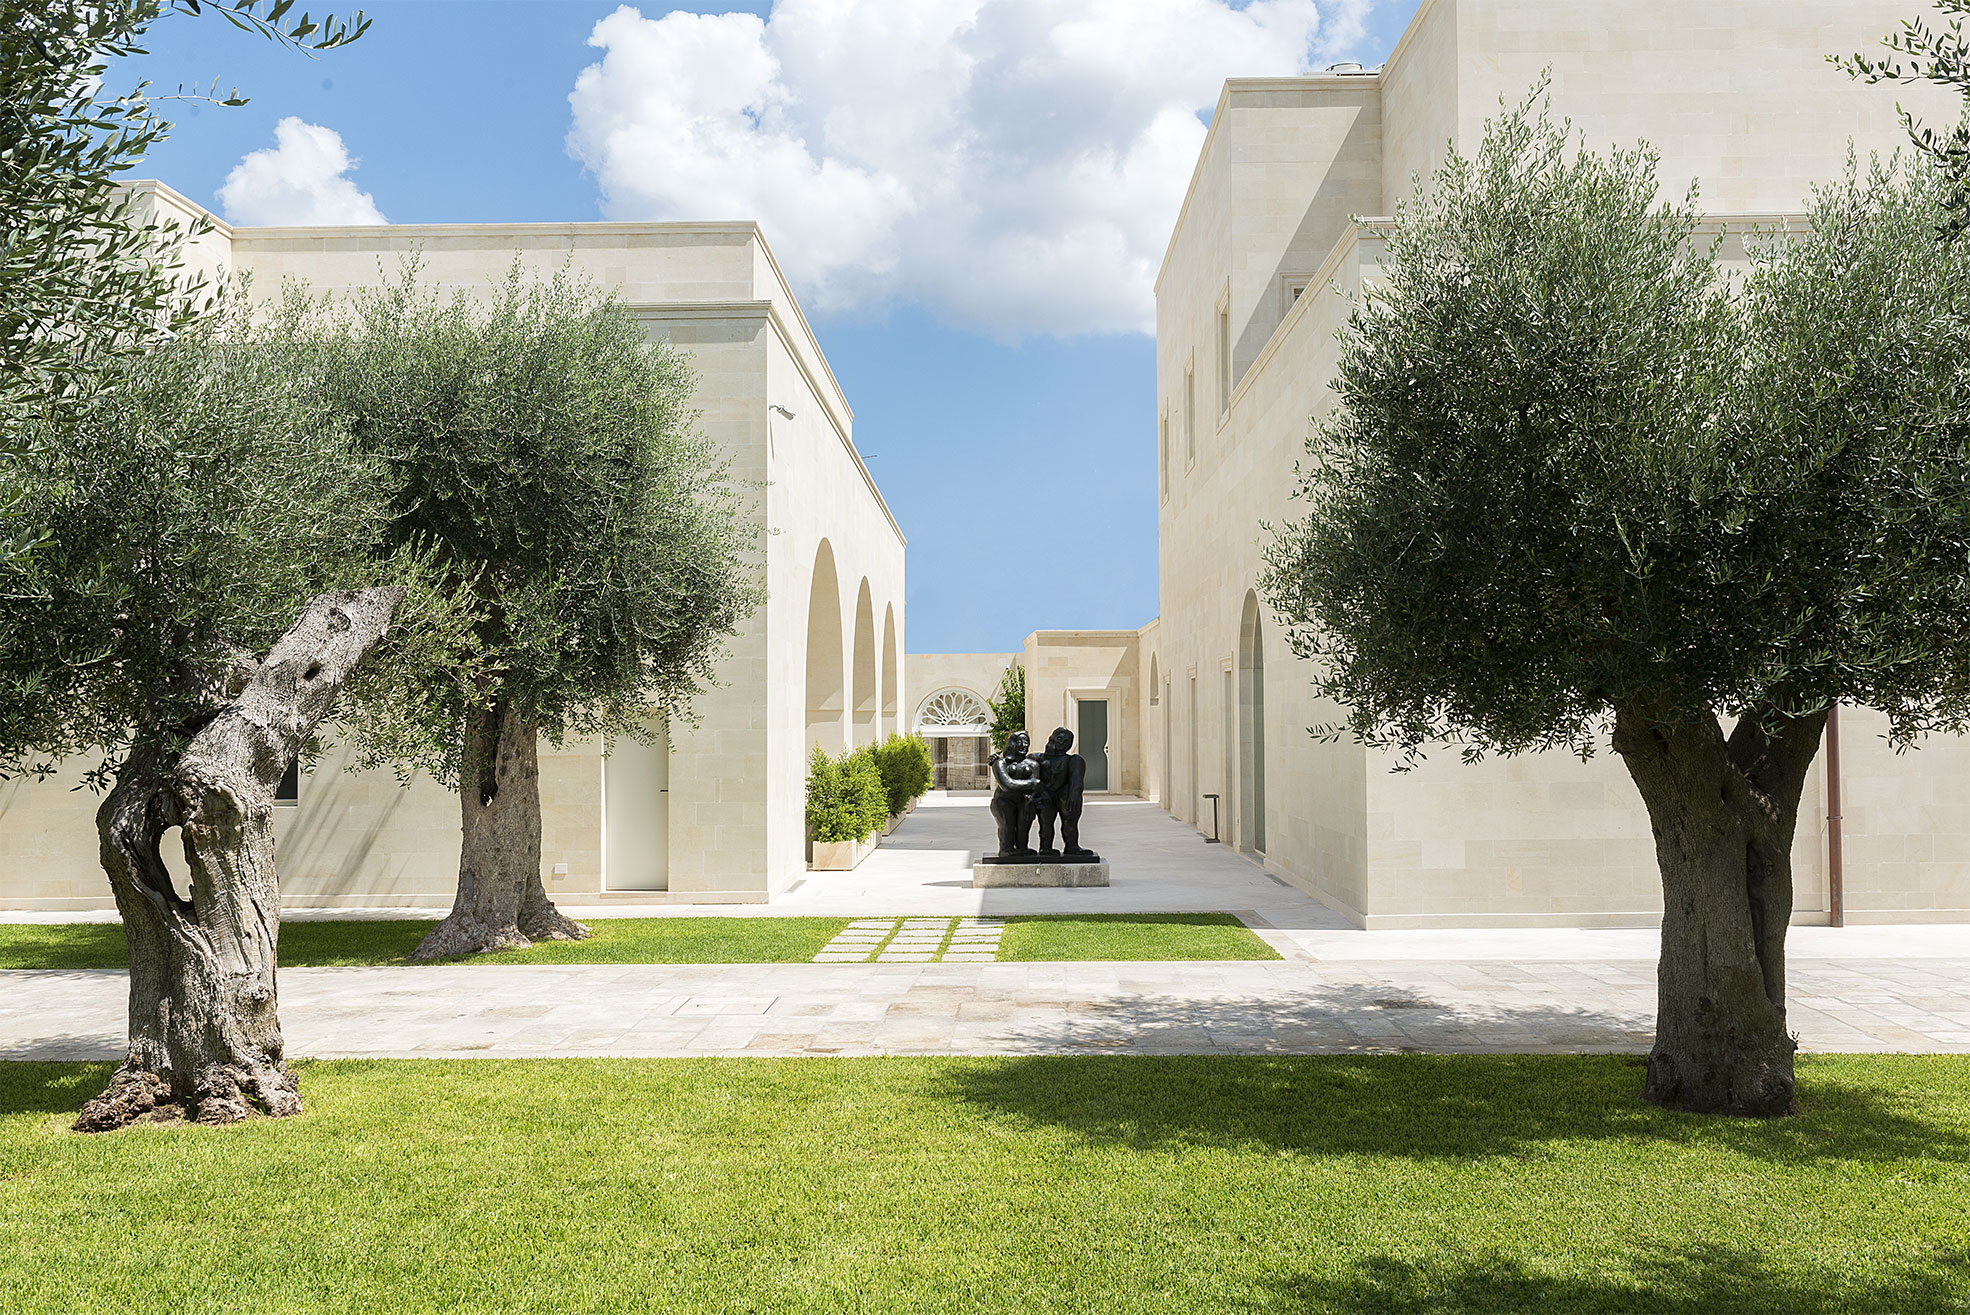 Garden with a statue and facade of La fiermontina resort in Lecce Photographer Maria Teresa Furnari